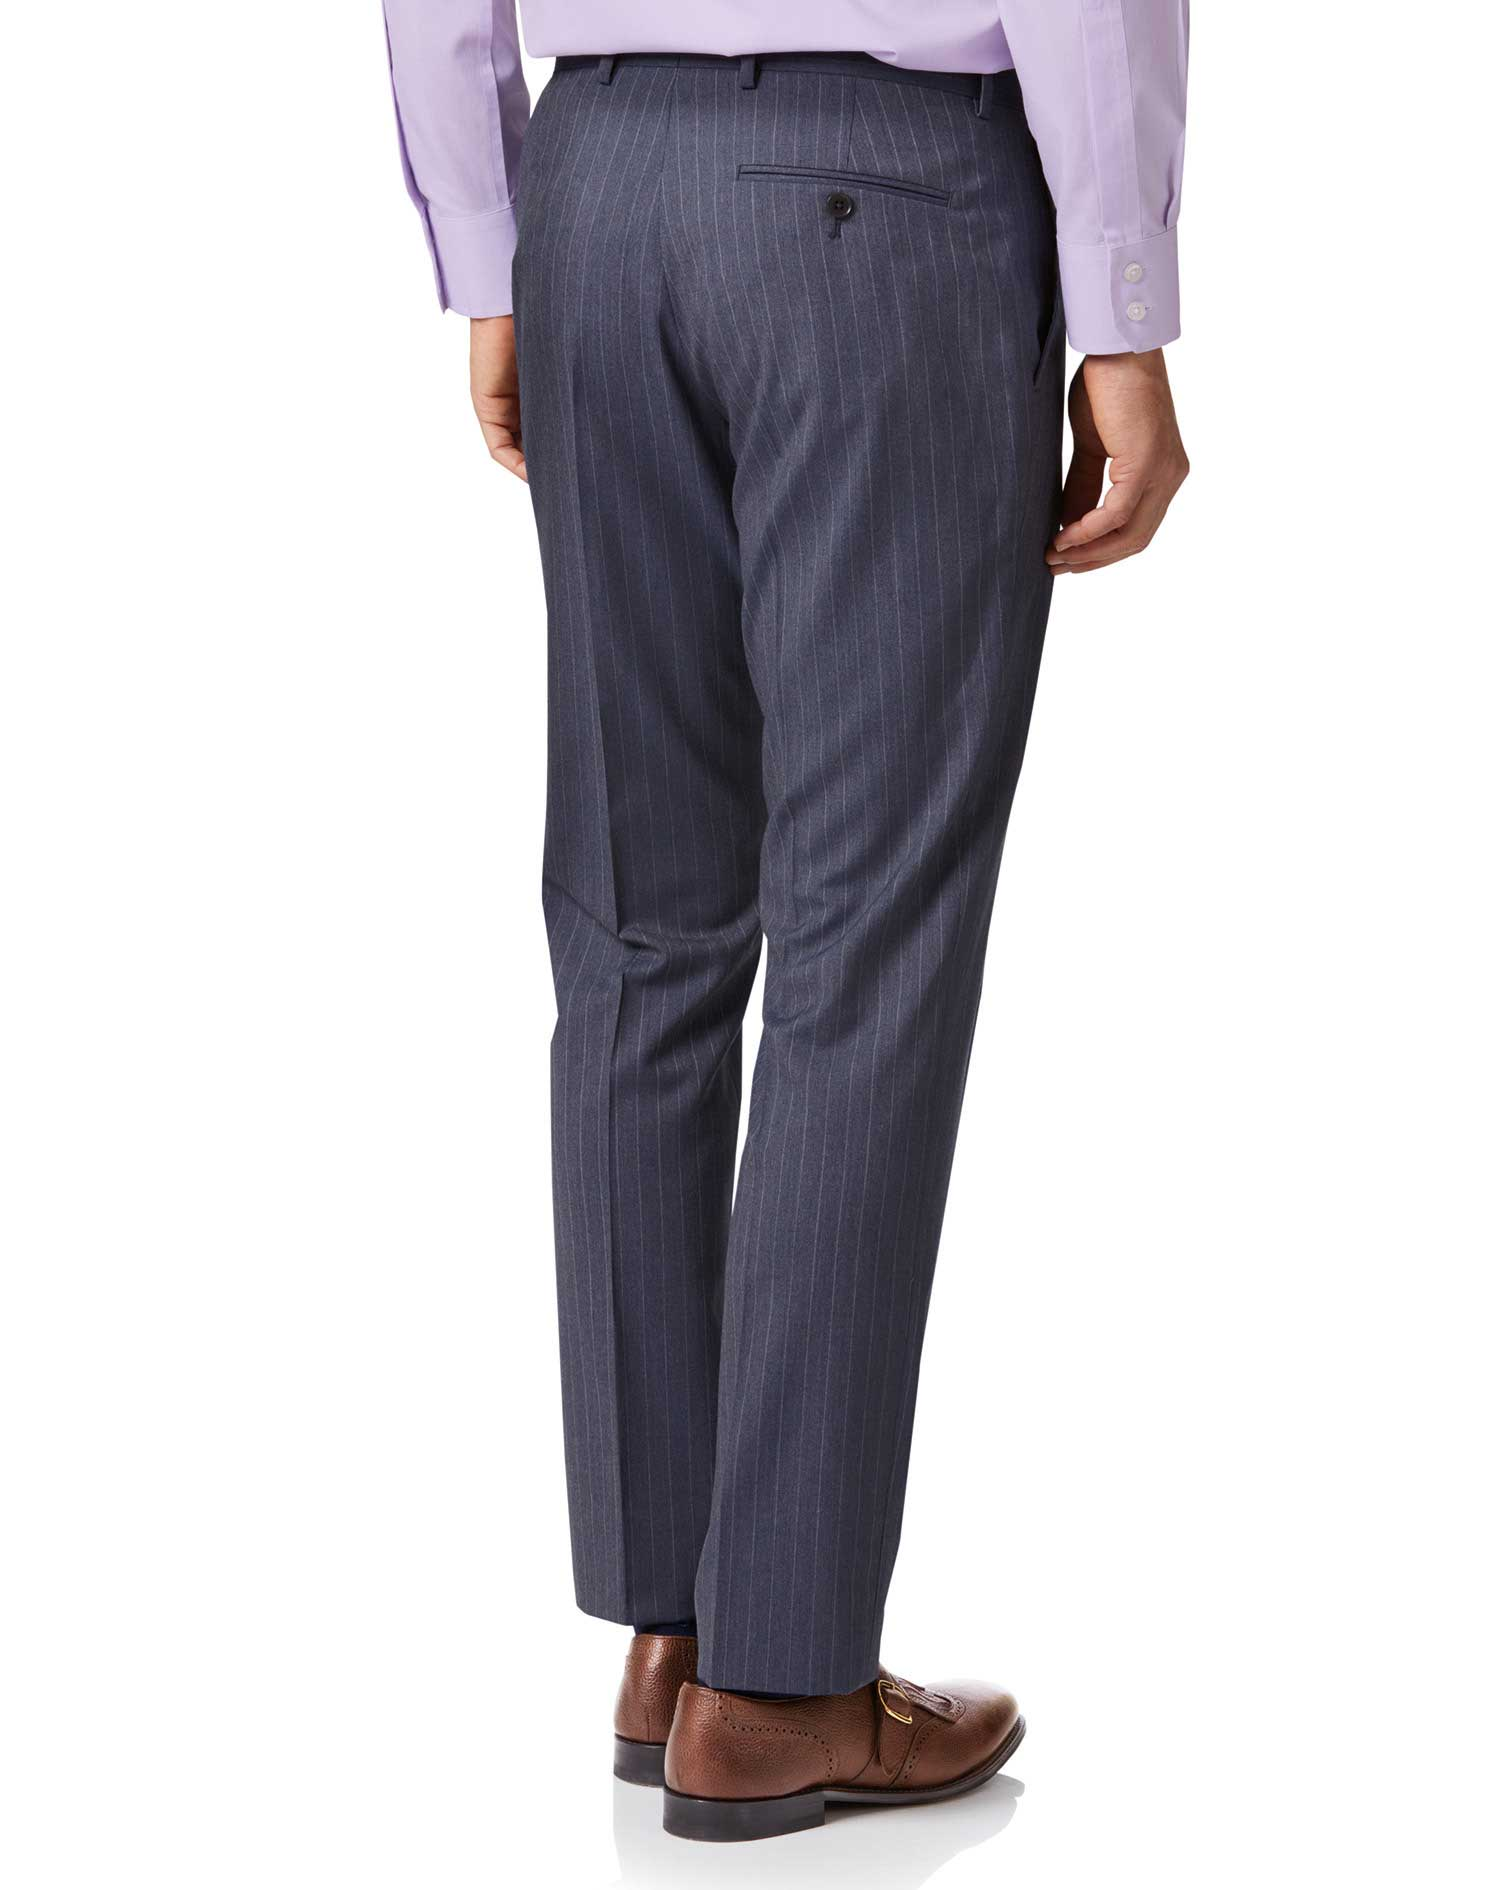 Airforce stripe classic fit Panama business suit pants